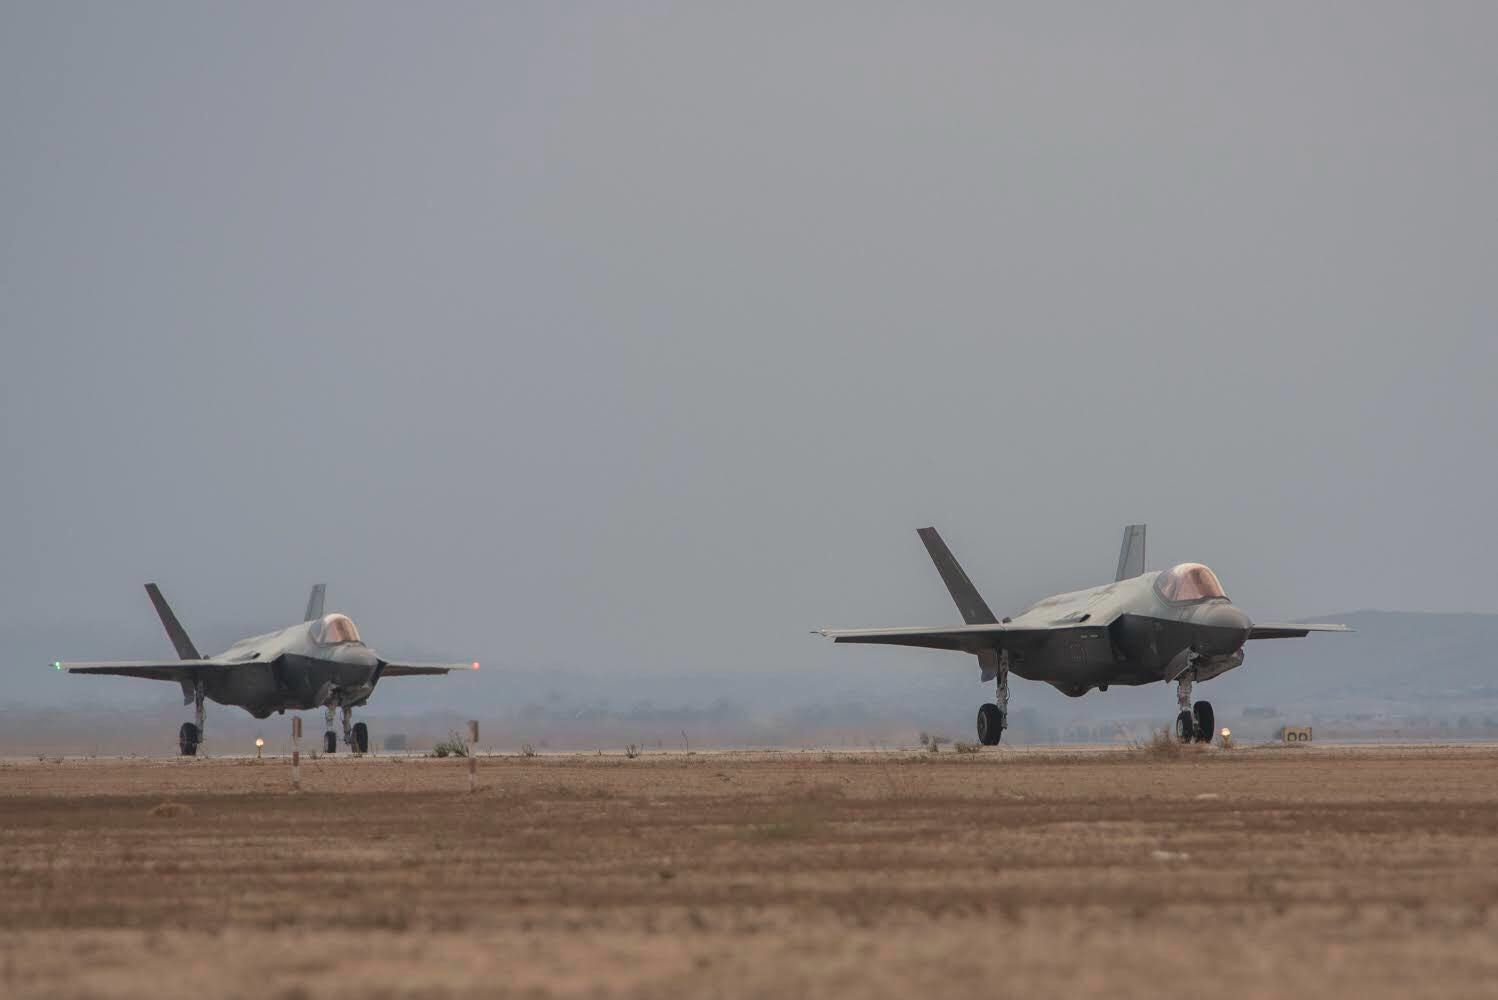 Two F-35 fighter jets land in Israel